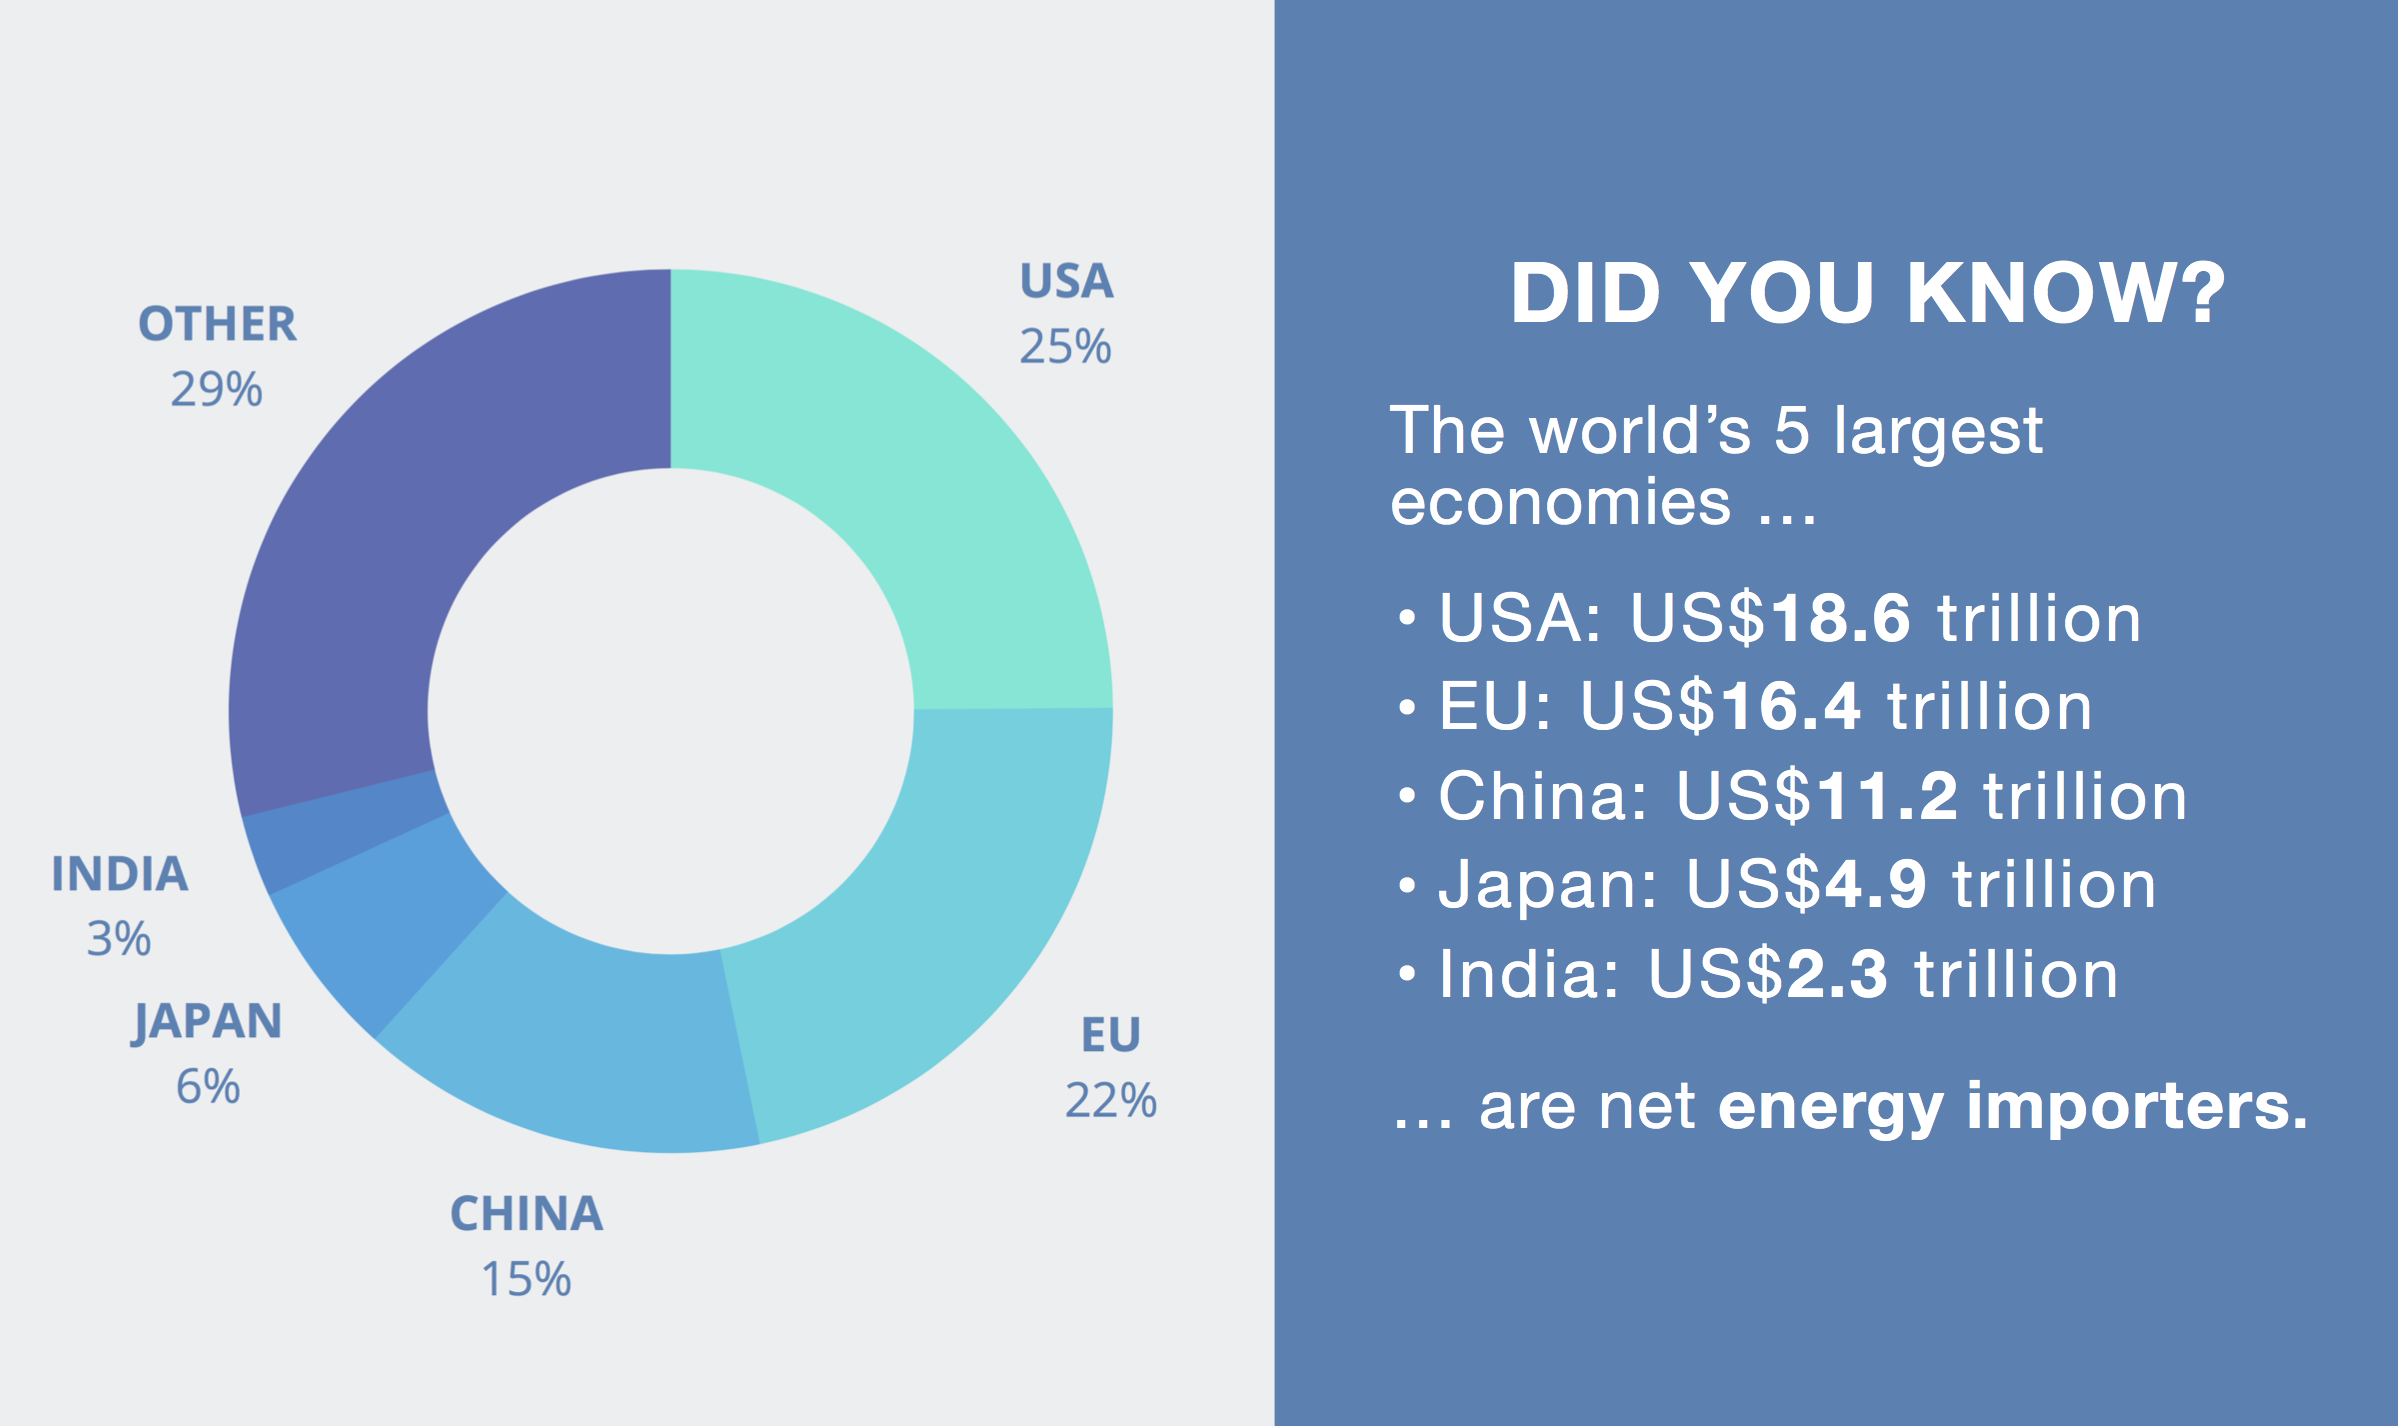 top-5-largest-economies-energy-importers.png